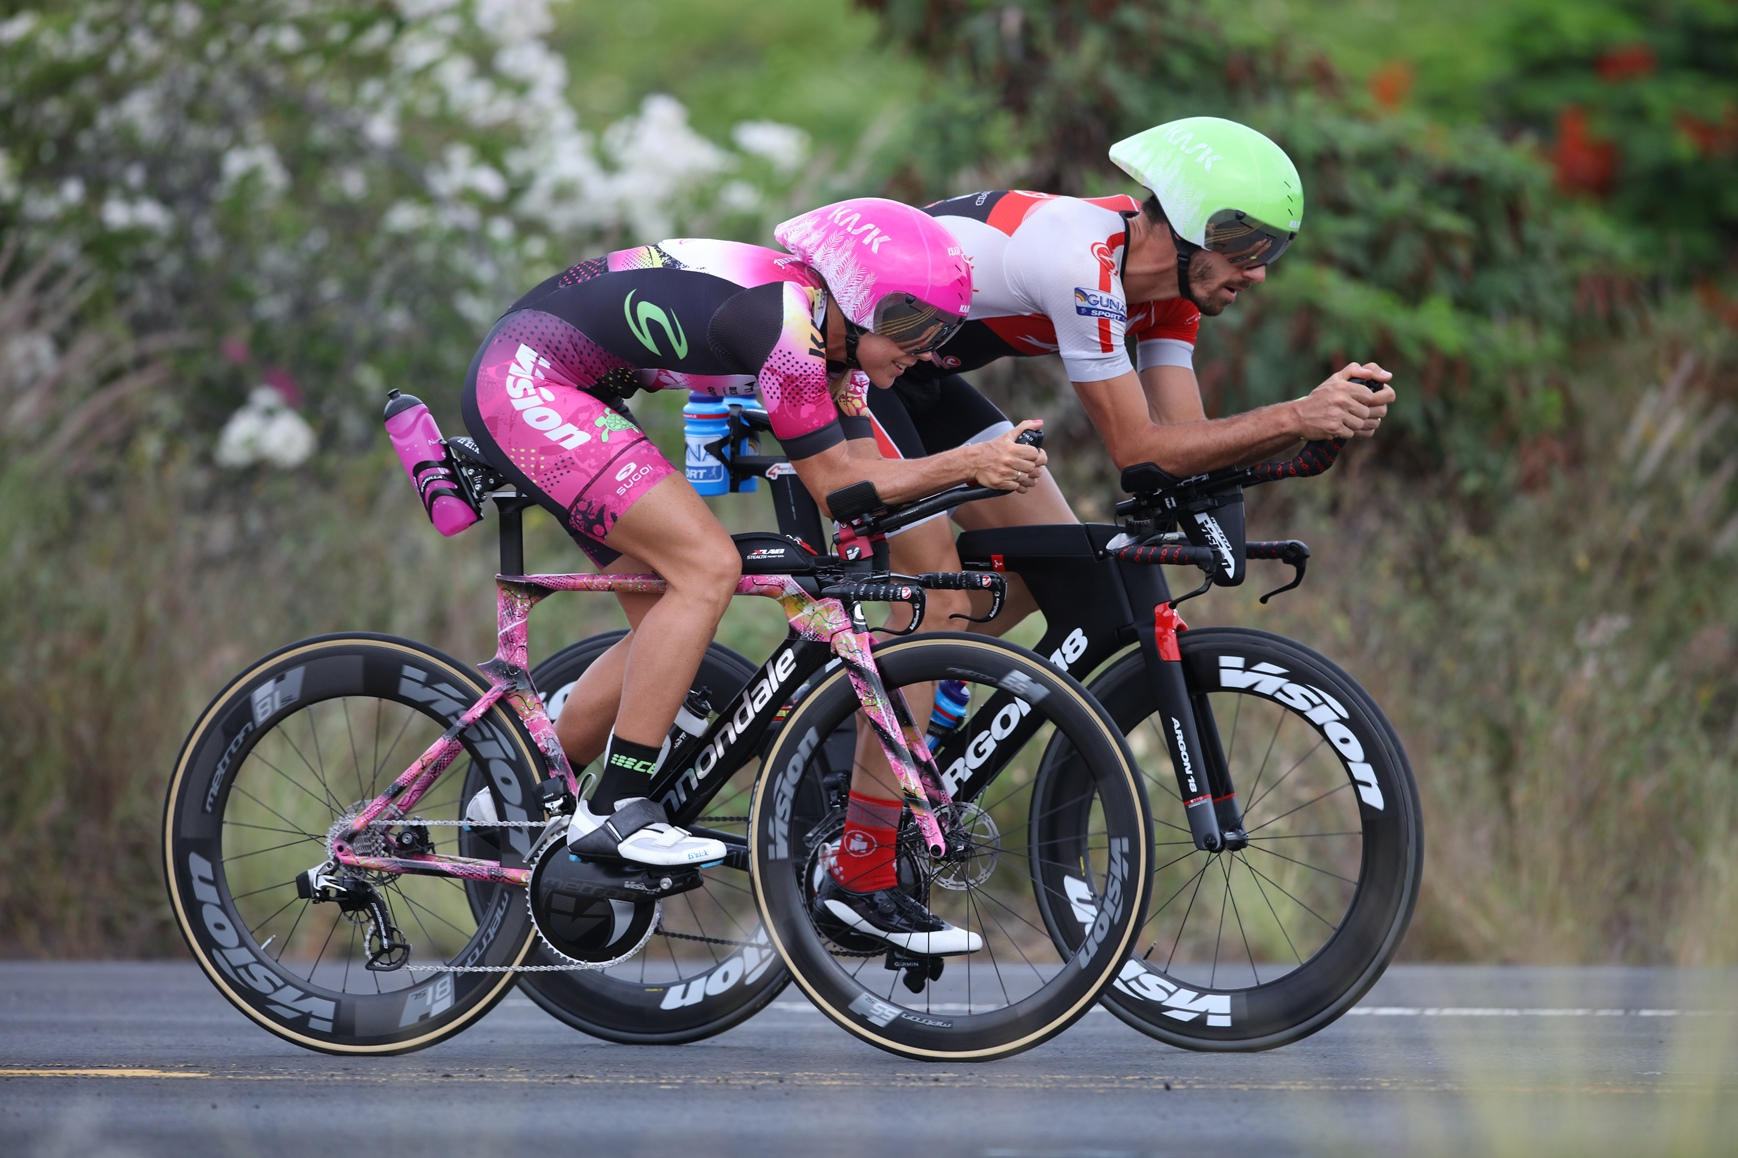 af8596c91 Ironman World Championship Preview – Who To Watch At Kona